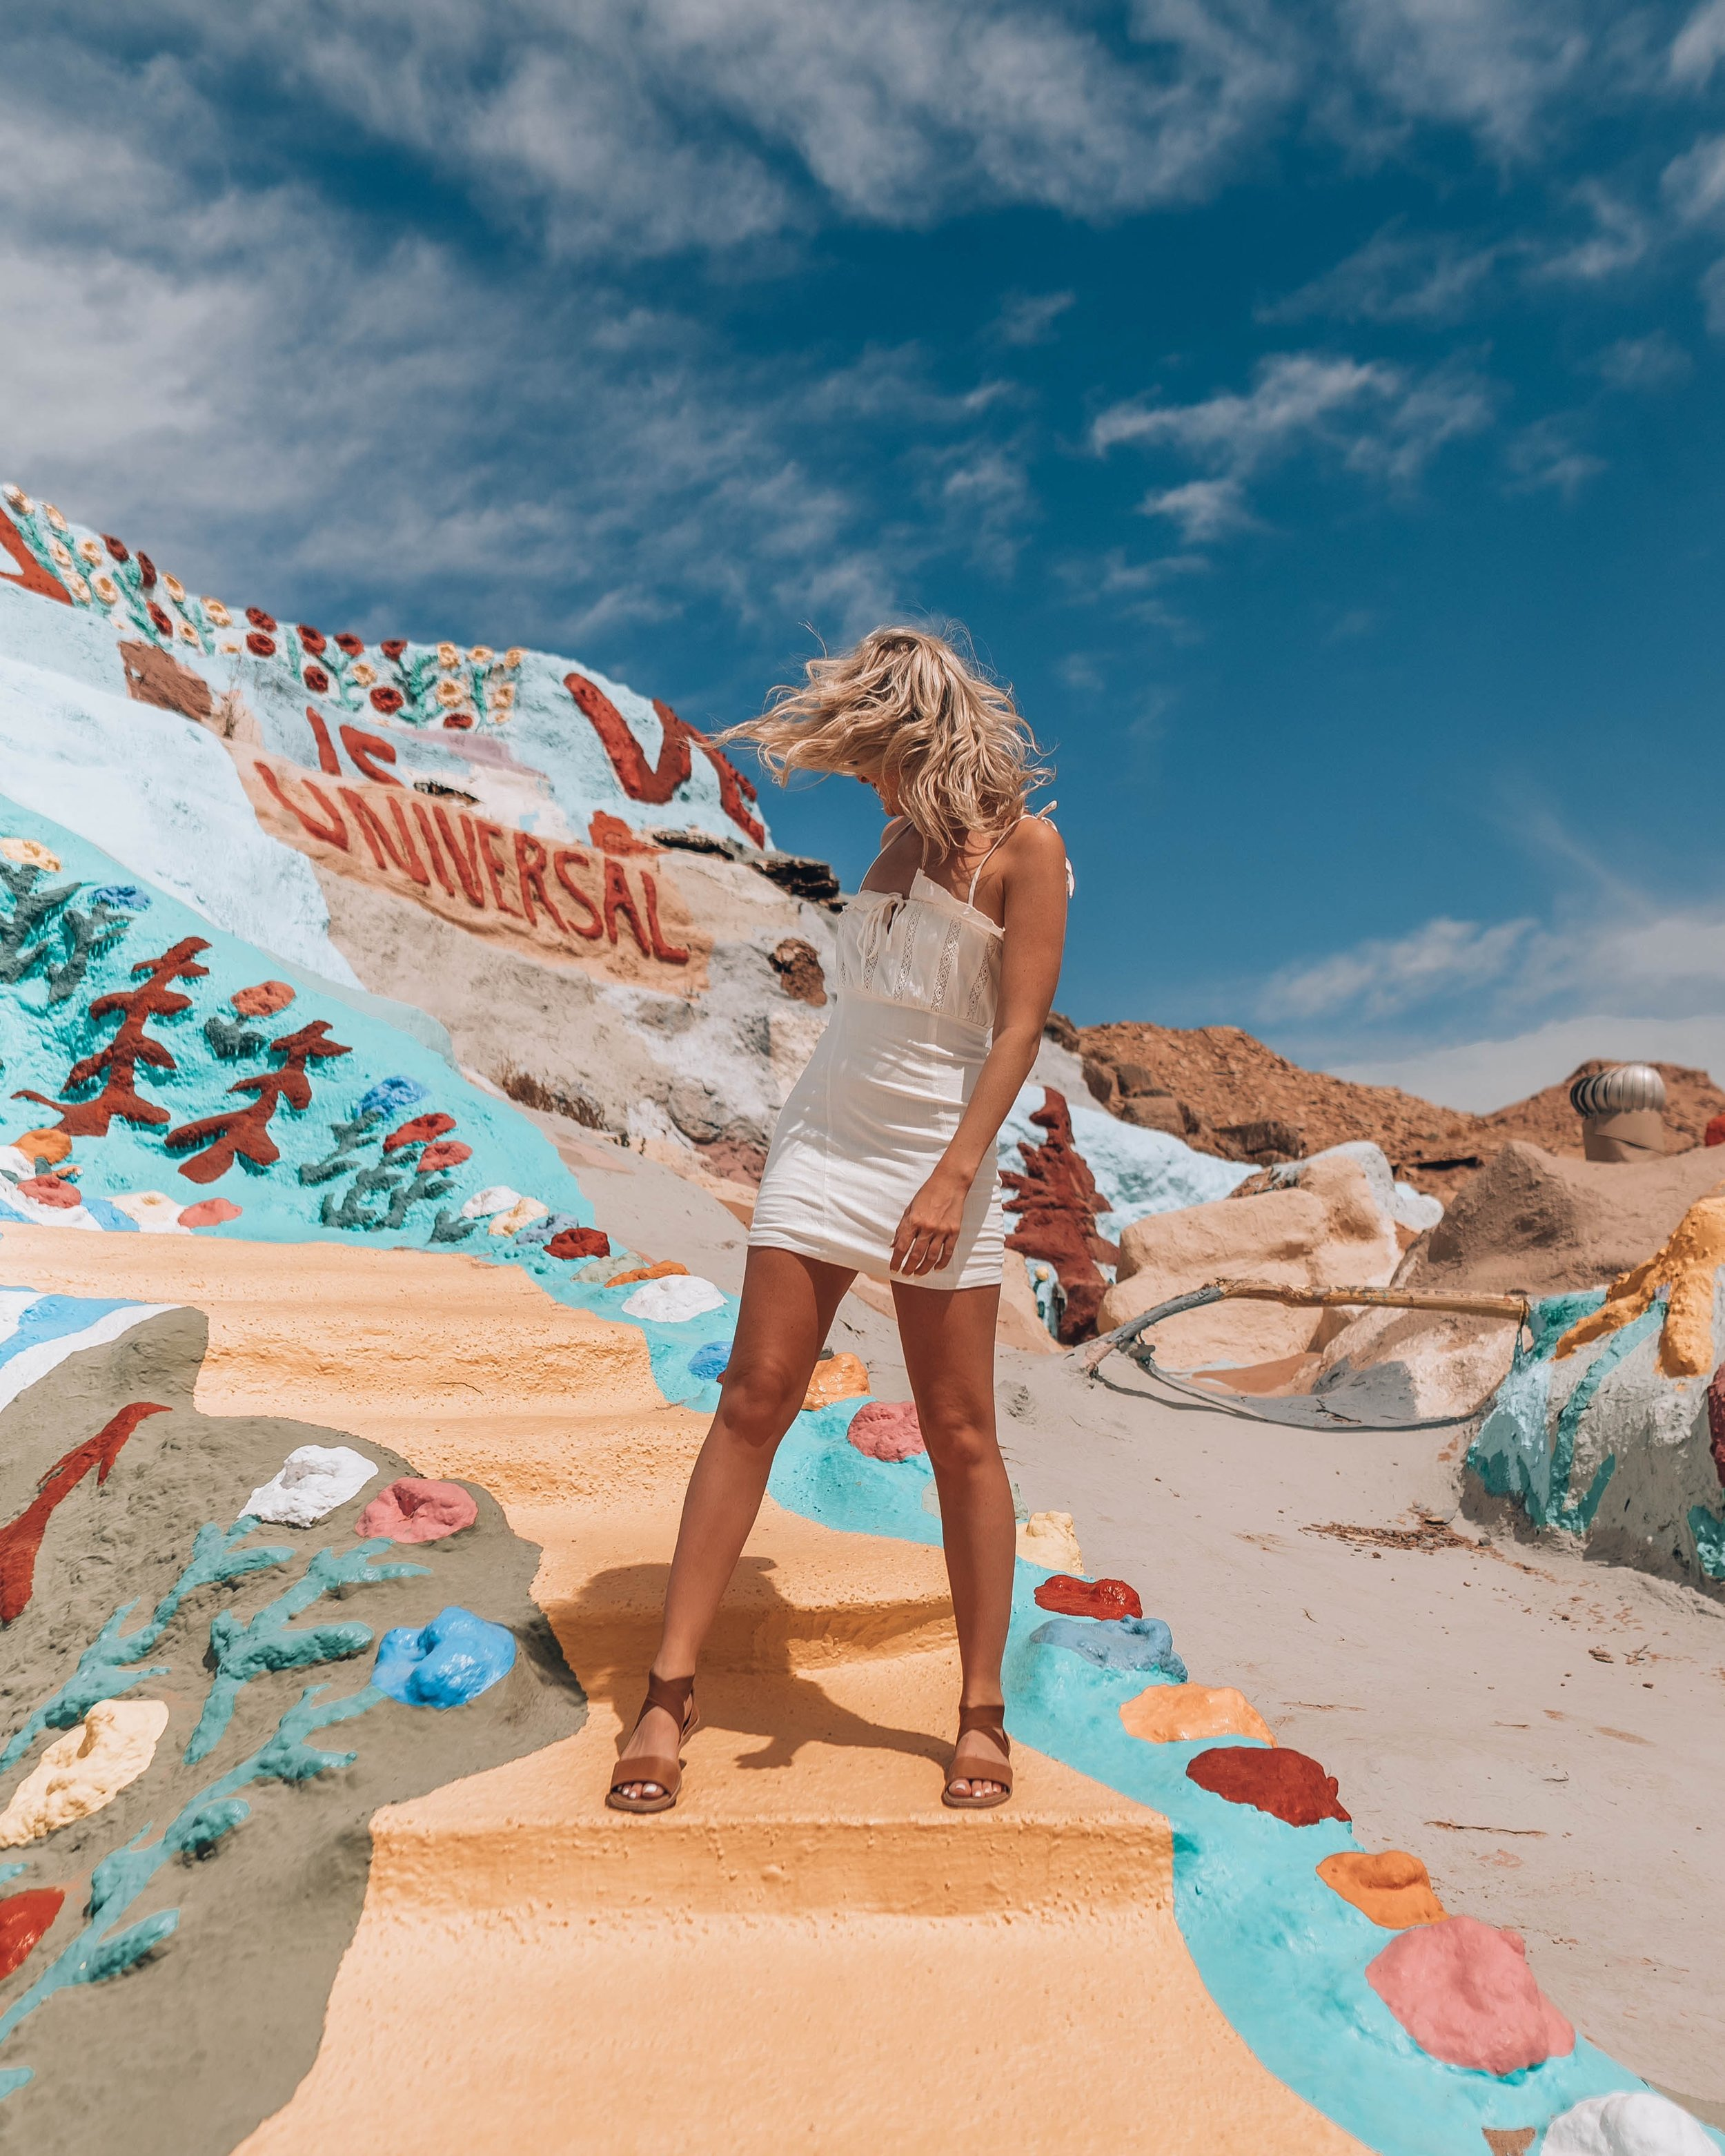 Salvation Mountain - A man-made mountain covered in half a million gallons of latex paint, definitely a one-of-a-kind sight 28 years in the making! Salvation Mountain is about an hour and a half outside of Palm Springs, the best way to get there would be by car, we rented a car during our California trip. Salvation Mountain was created by the late Leonard Knight, several religious words + sayings and messages of love cover the mountain. In addition to that, there are so many beautiful and vibrant colorful scenes that are literally picture perfect for photos.The address: 603 Beal Rd Niland, CA 92257